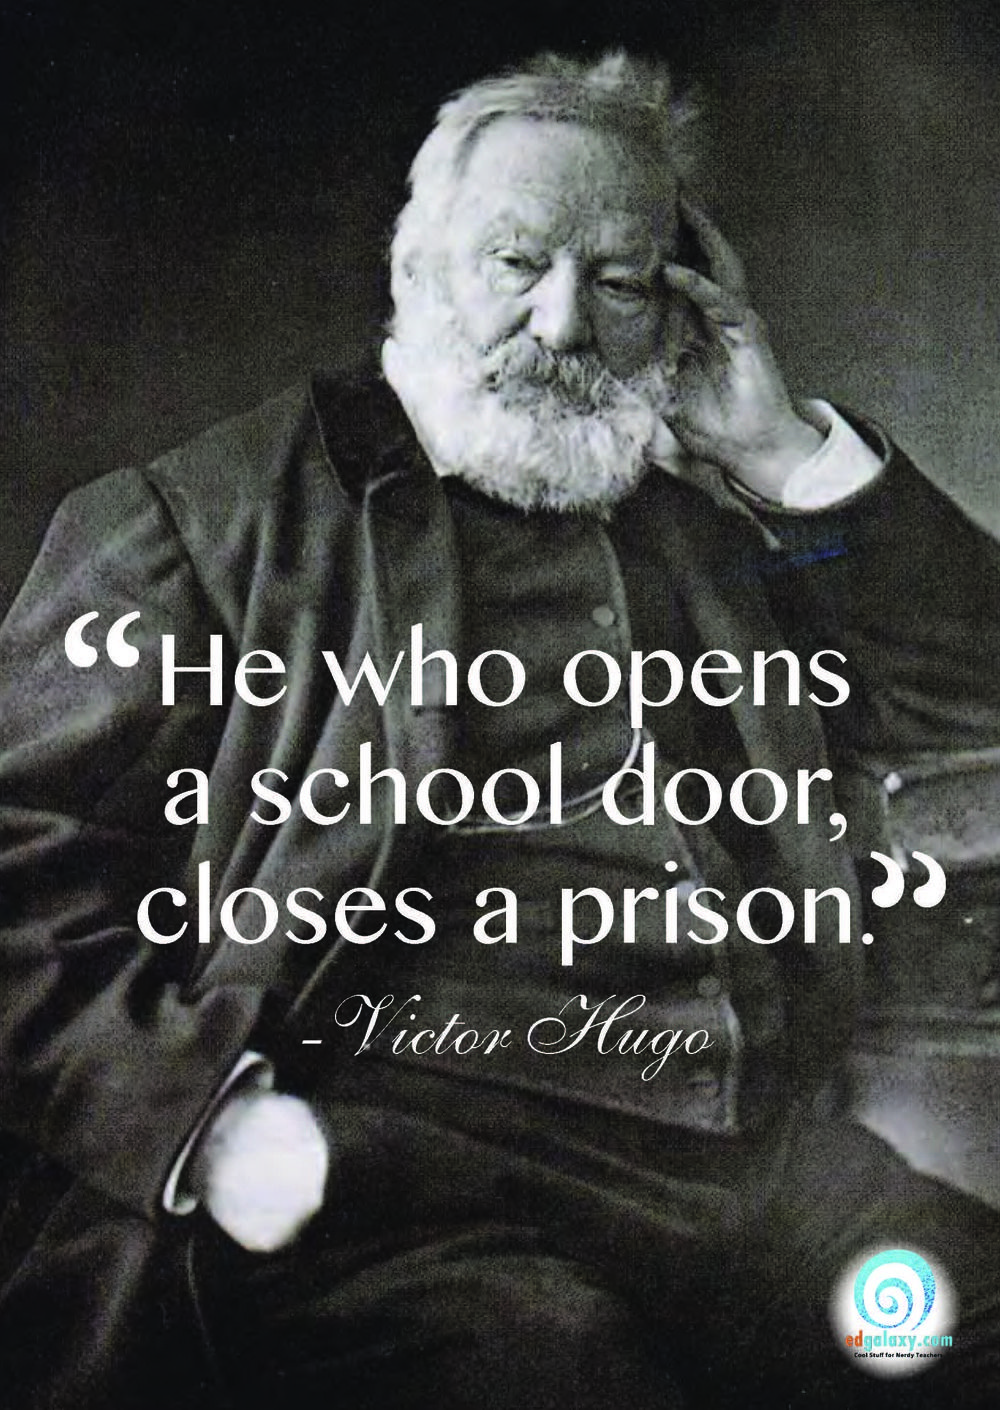 Famous Education Quotes Awesome Education Quotes  Famous Quotes For Teachers And Students